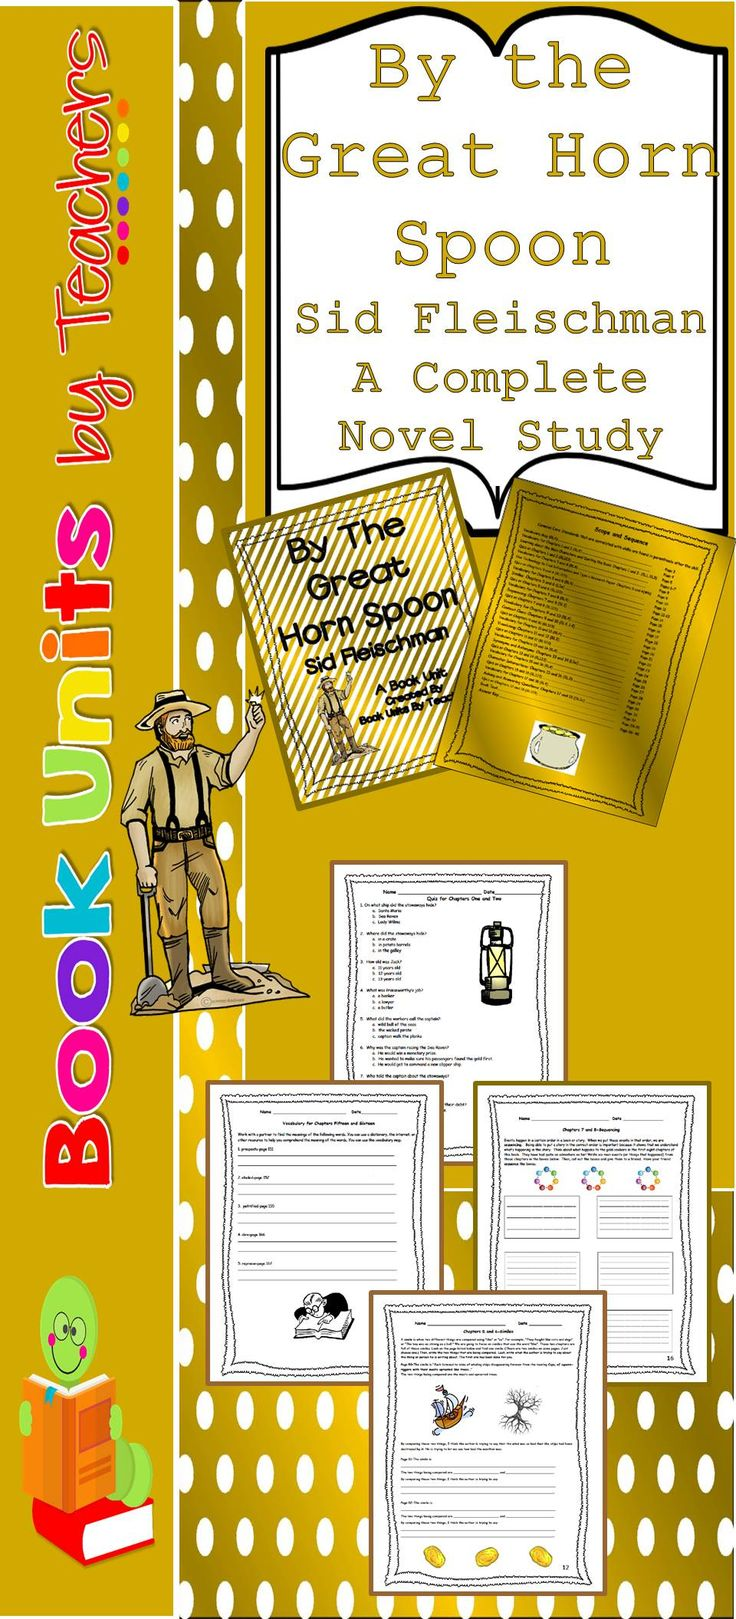 worksheet By The Great Horn Spoon Worksheets 19 best by the great horn spoon images on pinterest antlers book unit includes figurative language grammar reading